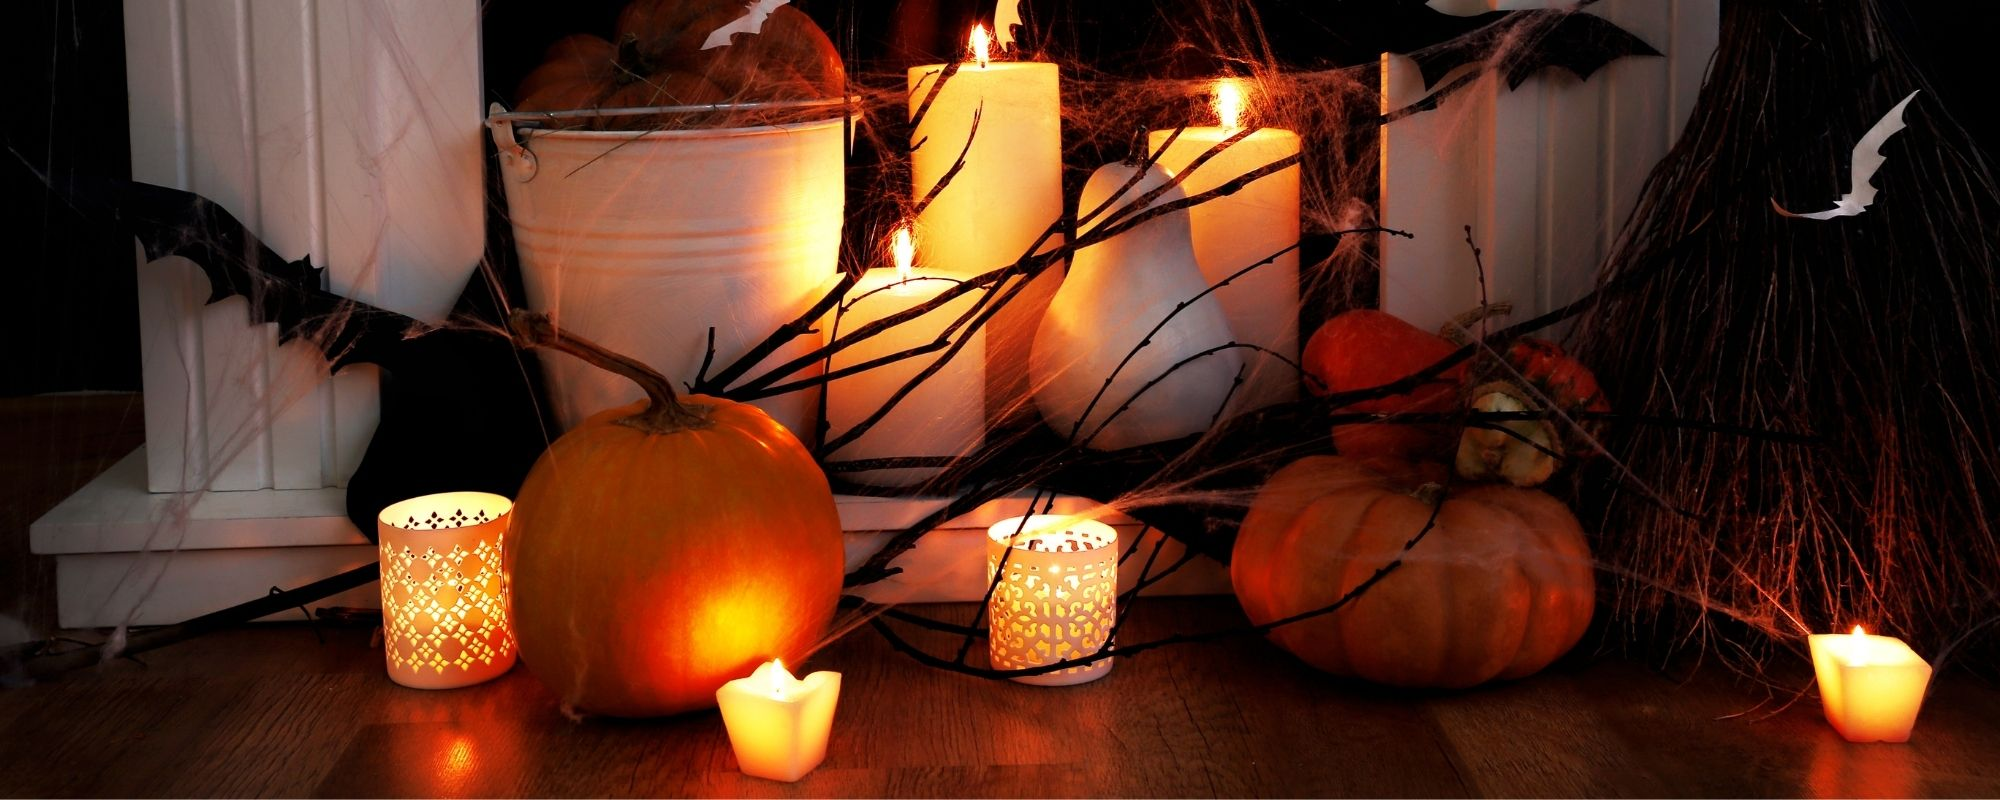 How to Make Your Fireplace Mantel Spooktacular